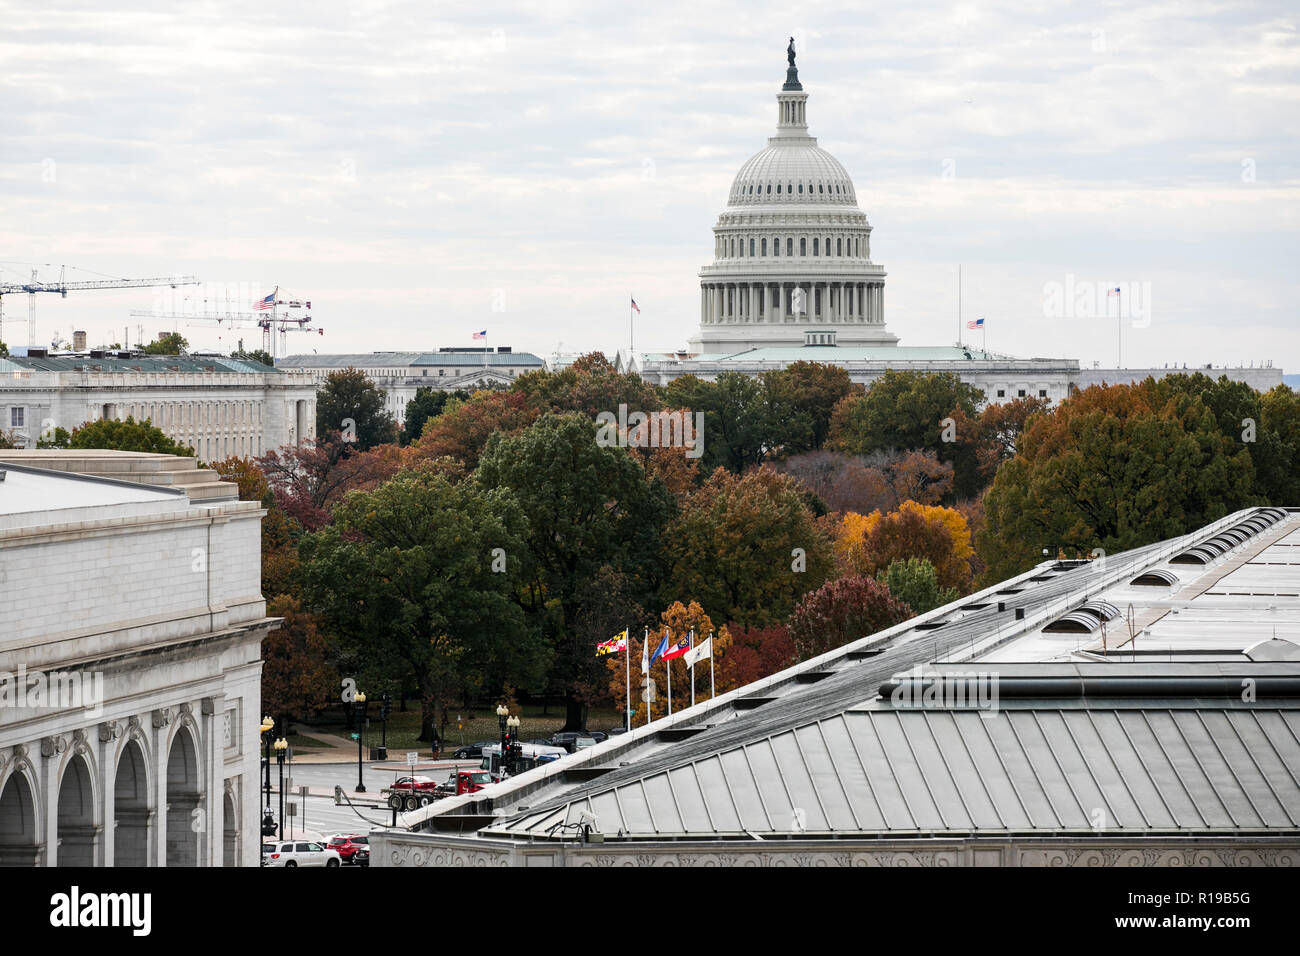 A view of the The United States Capitol Building in Washington, D.C. on November 7, 2018. - Stock Image